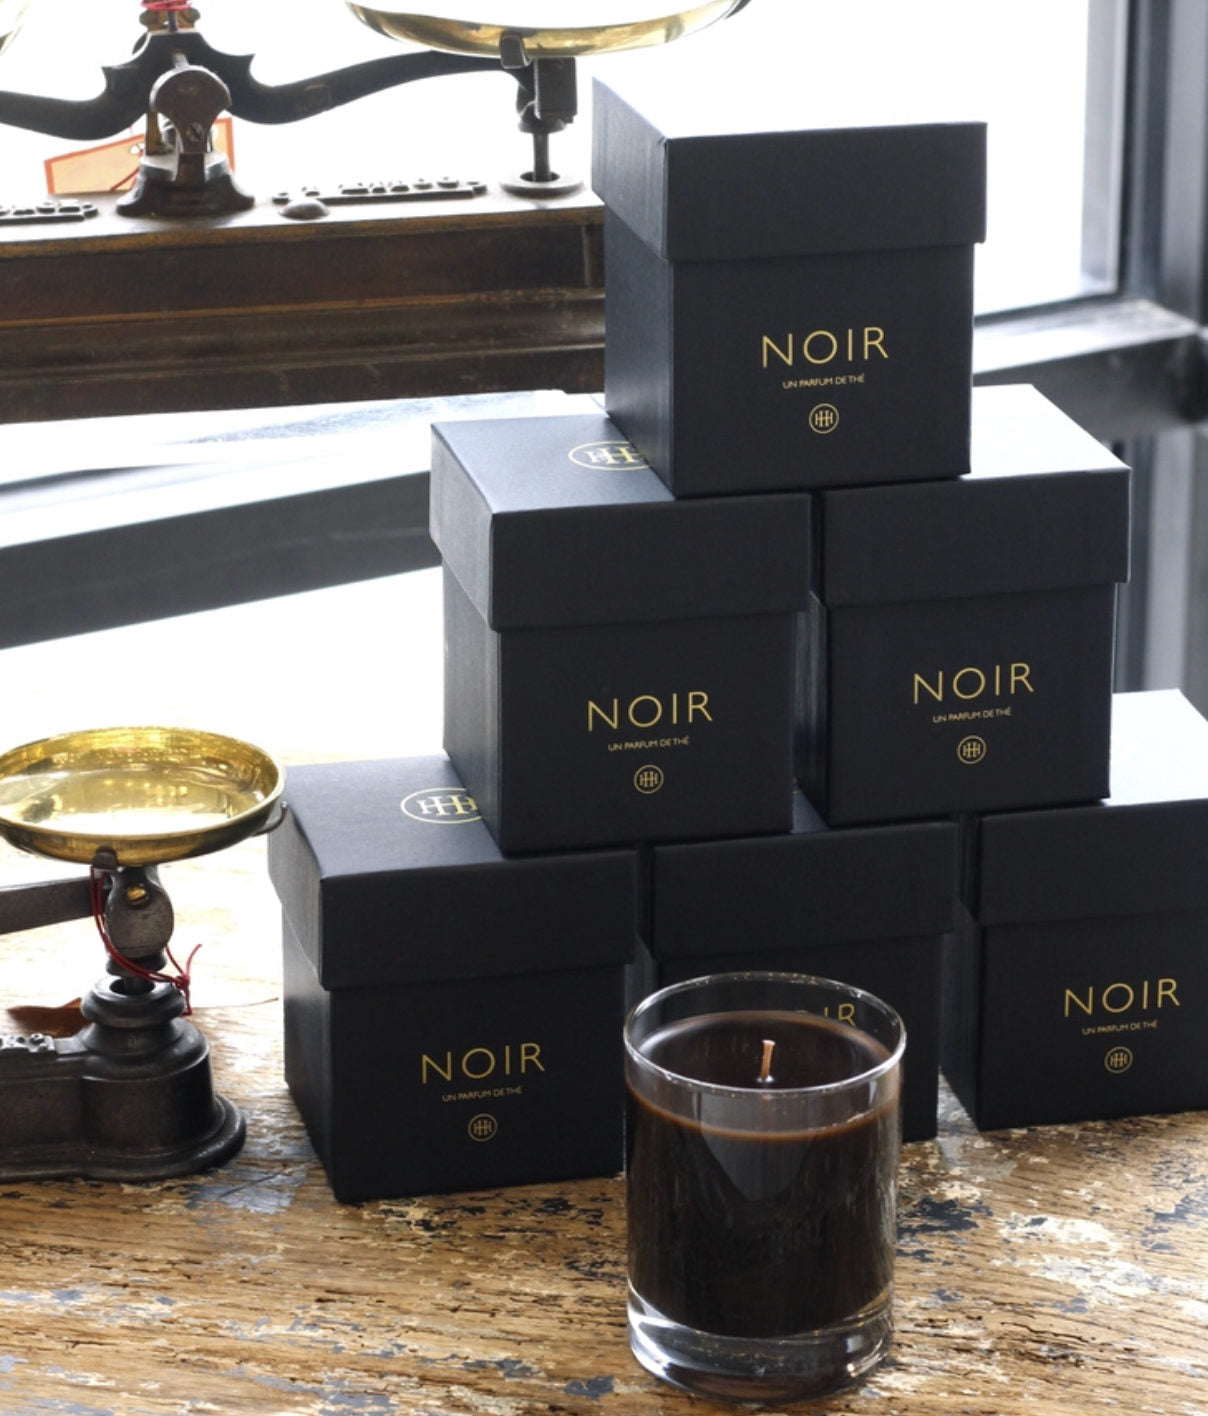 The Noir scent is the same as the Blanc -- just 20% stronger. We love them both.